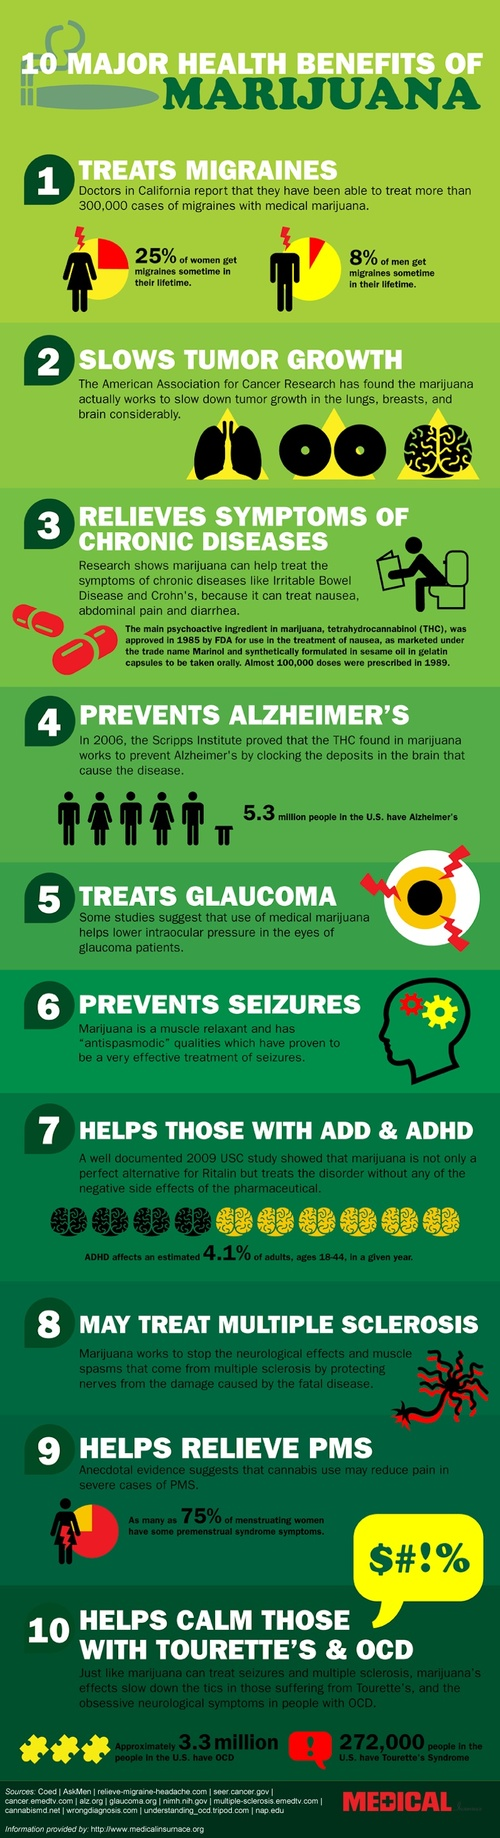 Medical-infographic-marijuana-health-benefits_large